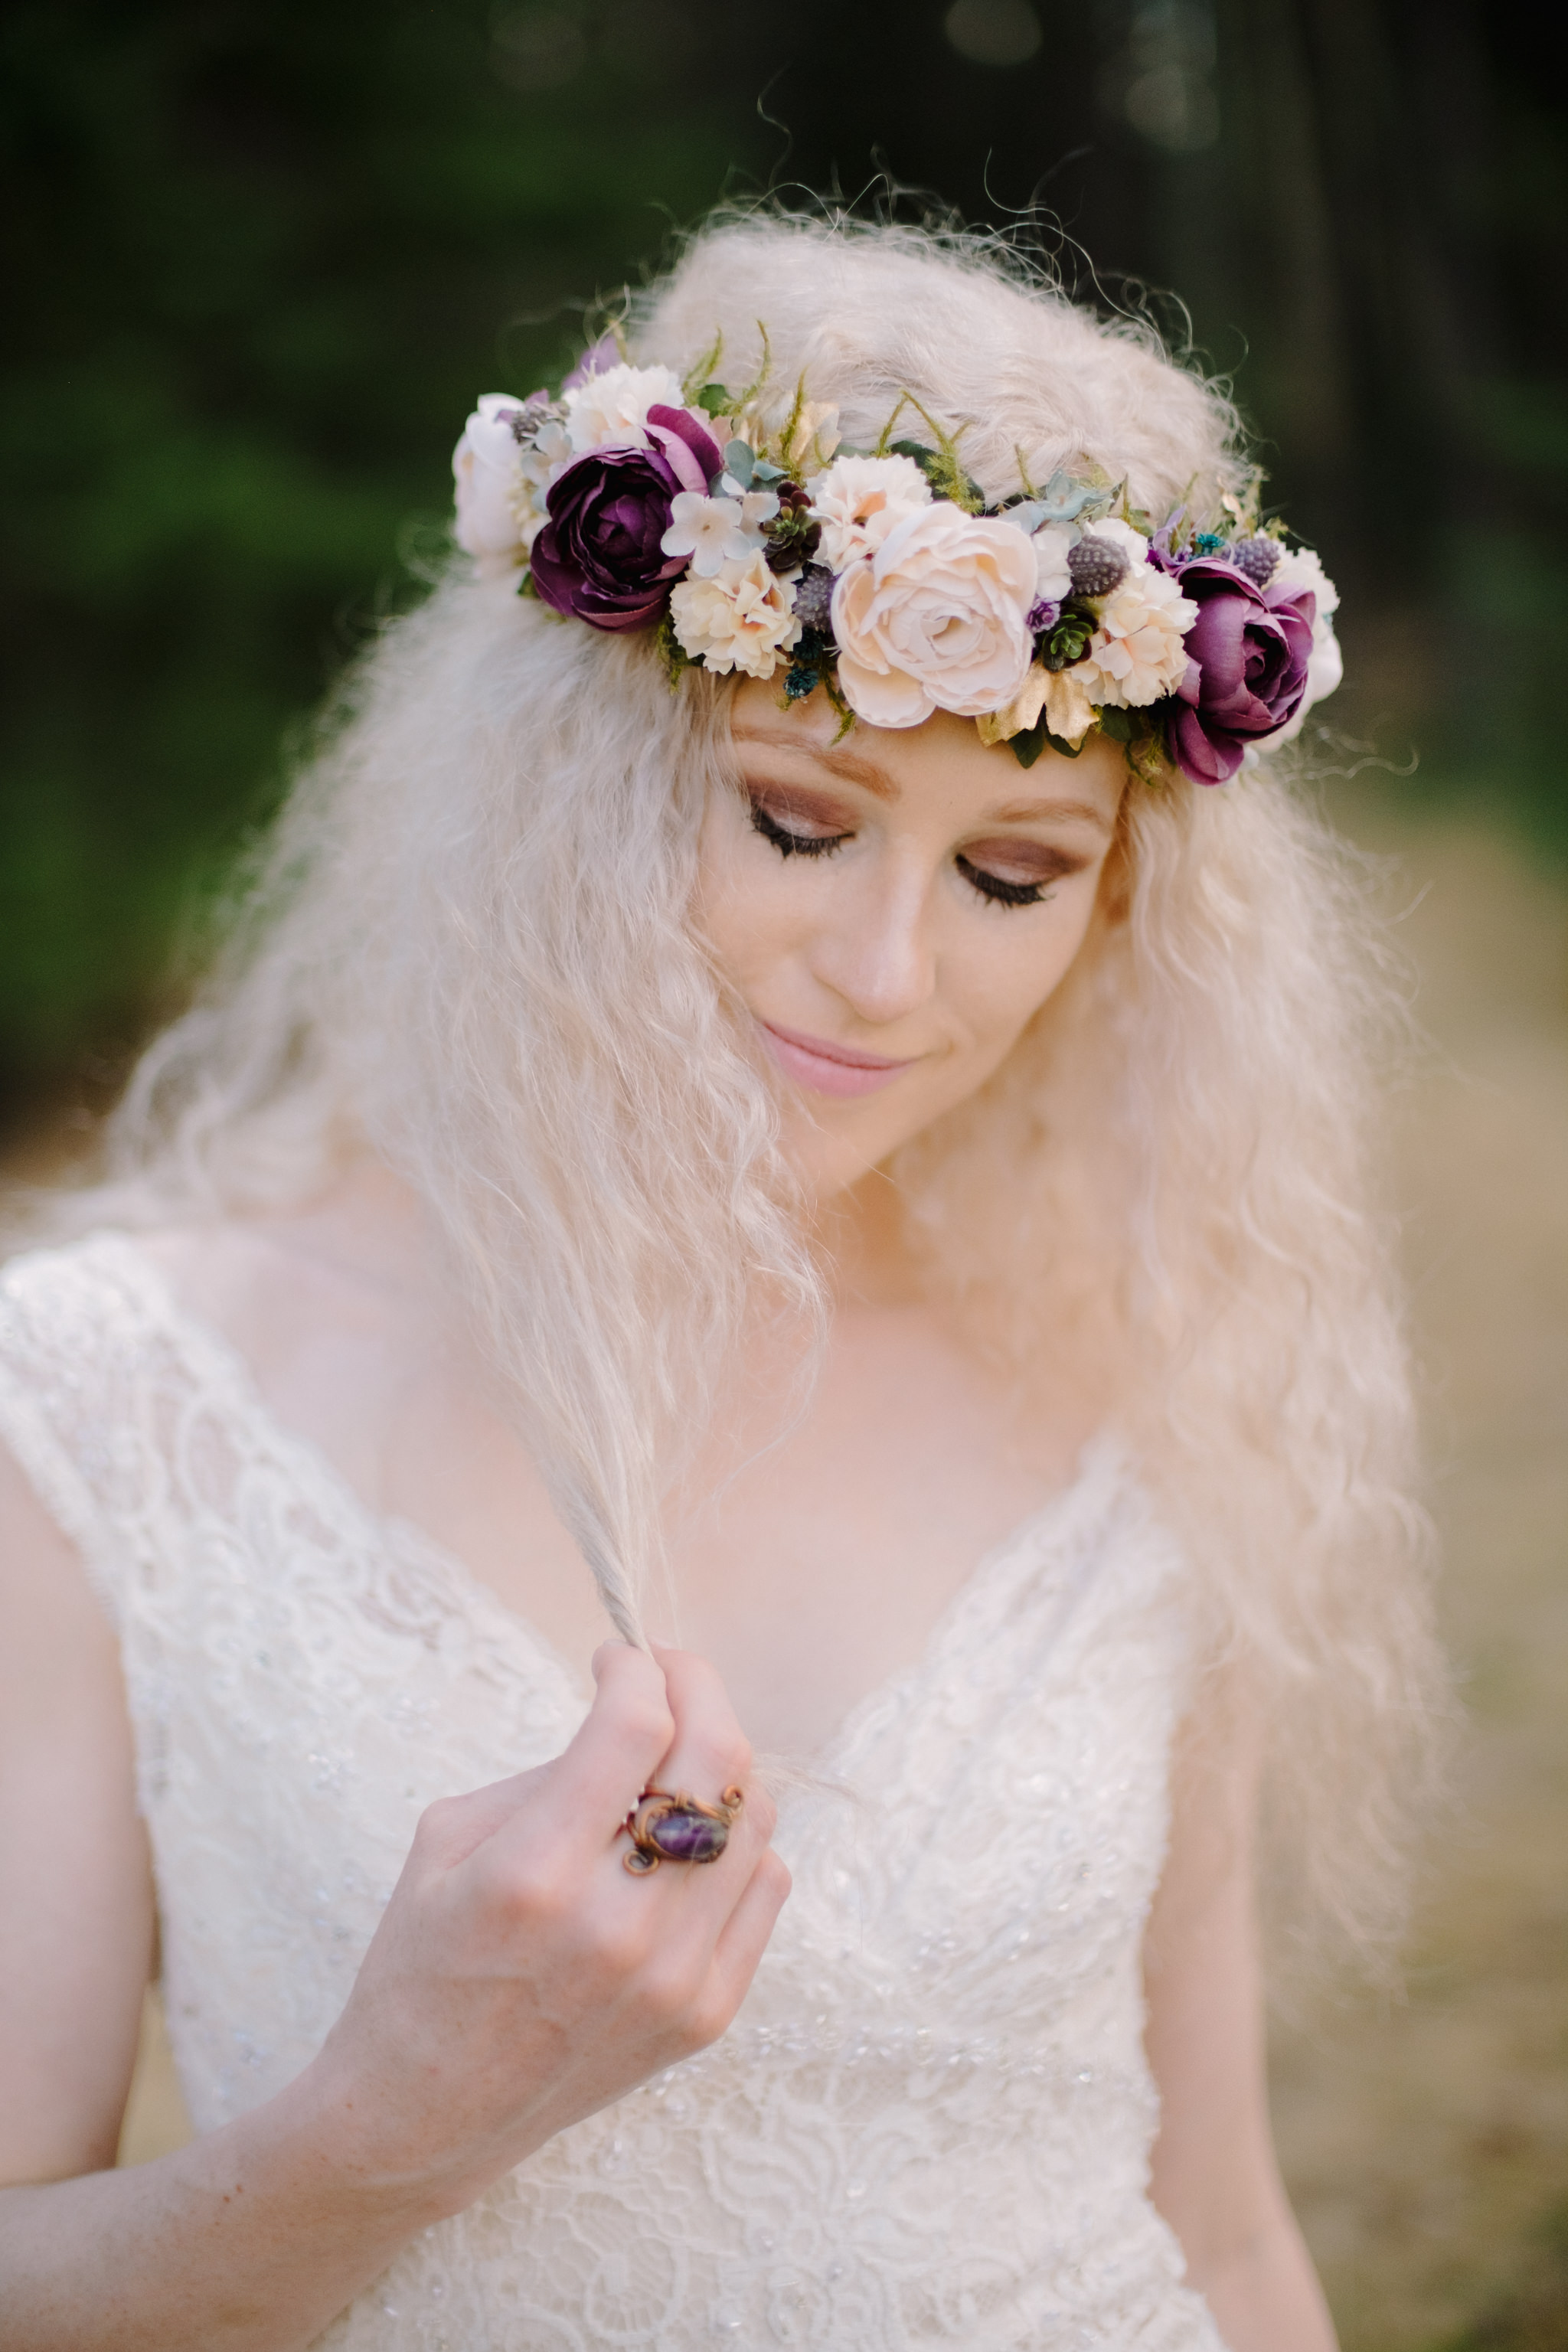 bride playing with hair while wearing flower crown